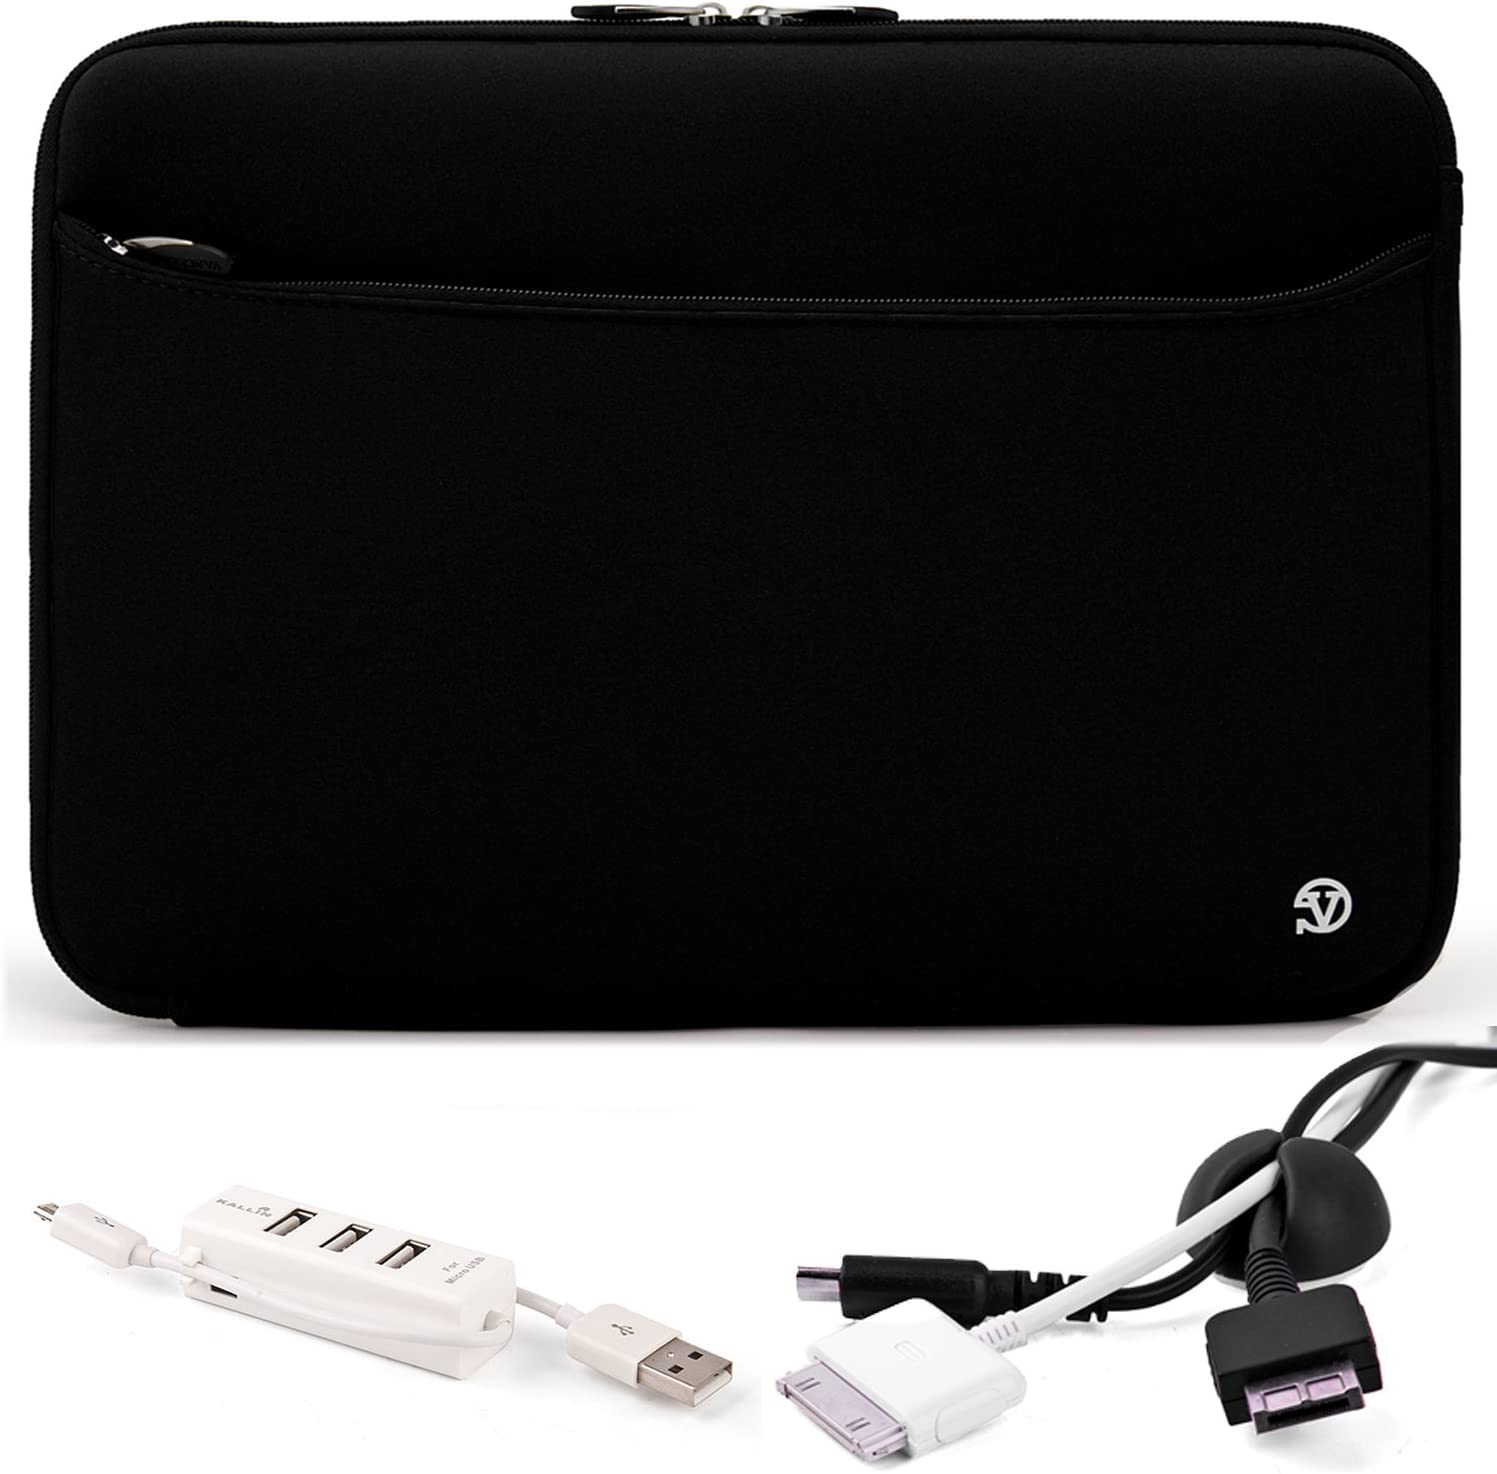 Carry On Travelling Convinient Soft Neoprene Sleeve Case For SONY VAIO T Series 13.3 inch Touchscreen Ultrabook and Black Cable Organizer and White 3 Port USB HUB with Micro USB Charger